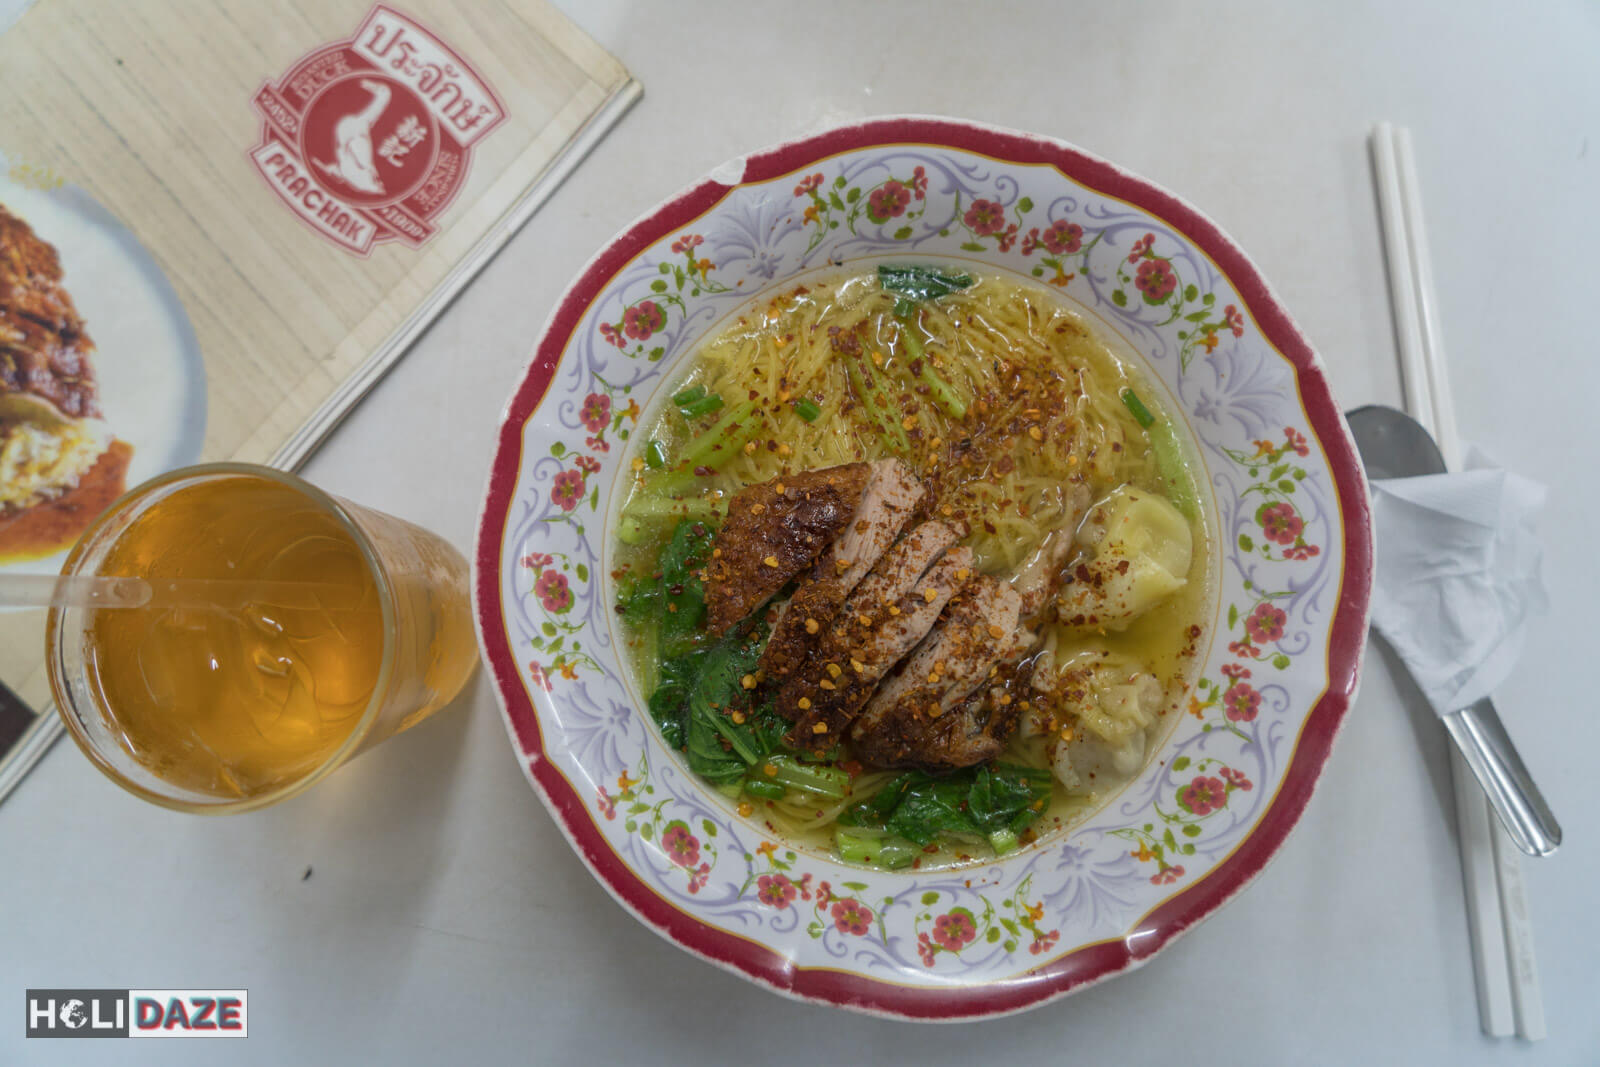 Roast duck noodle soup with pork wontons and ice tea at Prachak in Bangrak, Bangkok